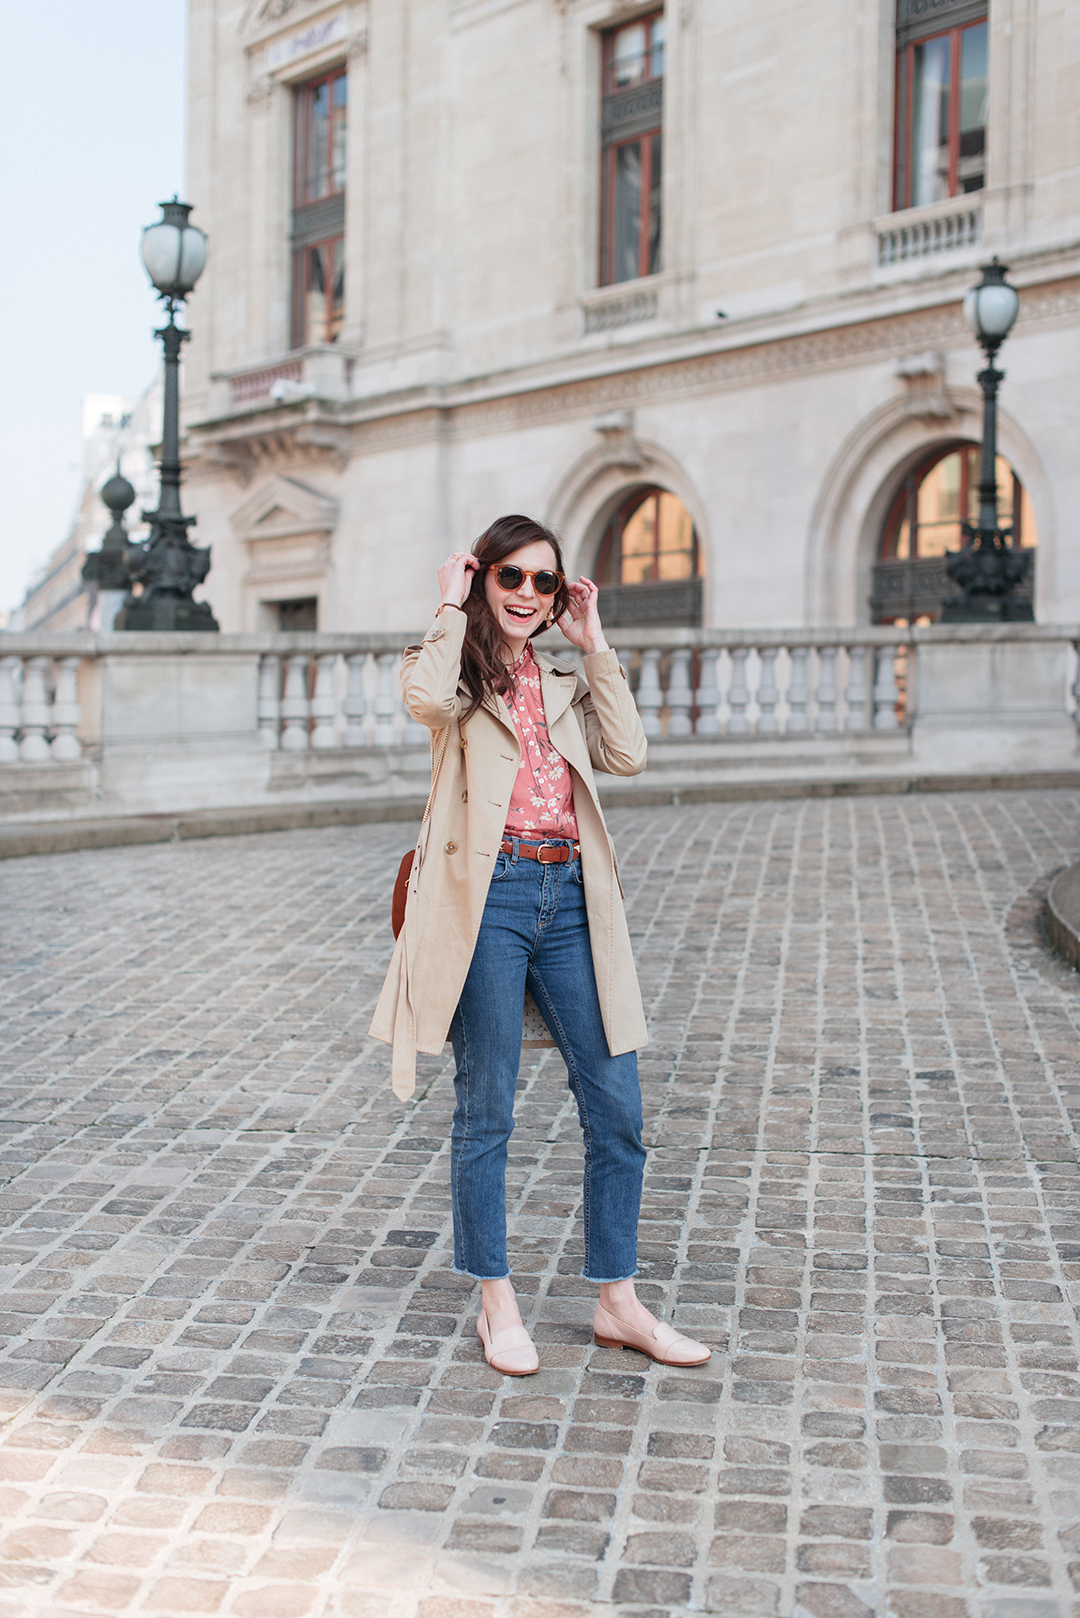 Blog-mode-And-The-City-Lifestyle-Looks-Chemisier-Fleurs-Palais-Garnier-6